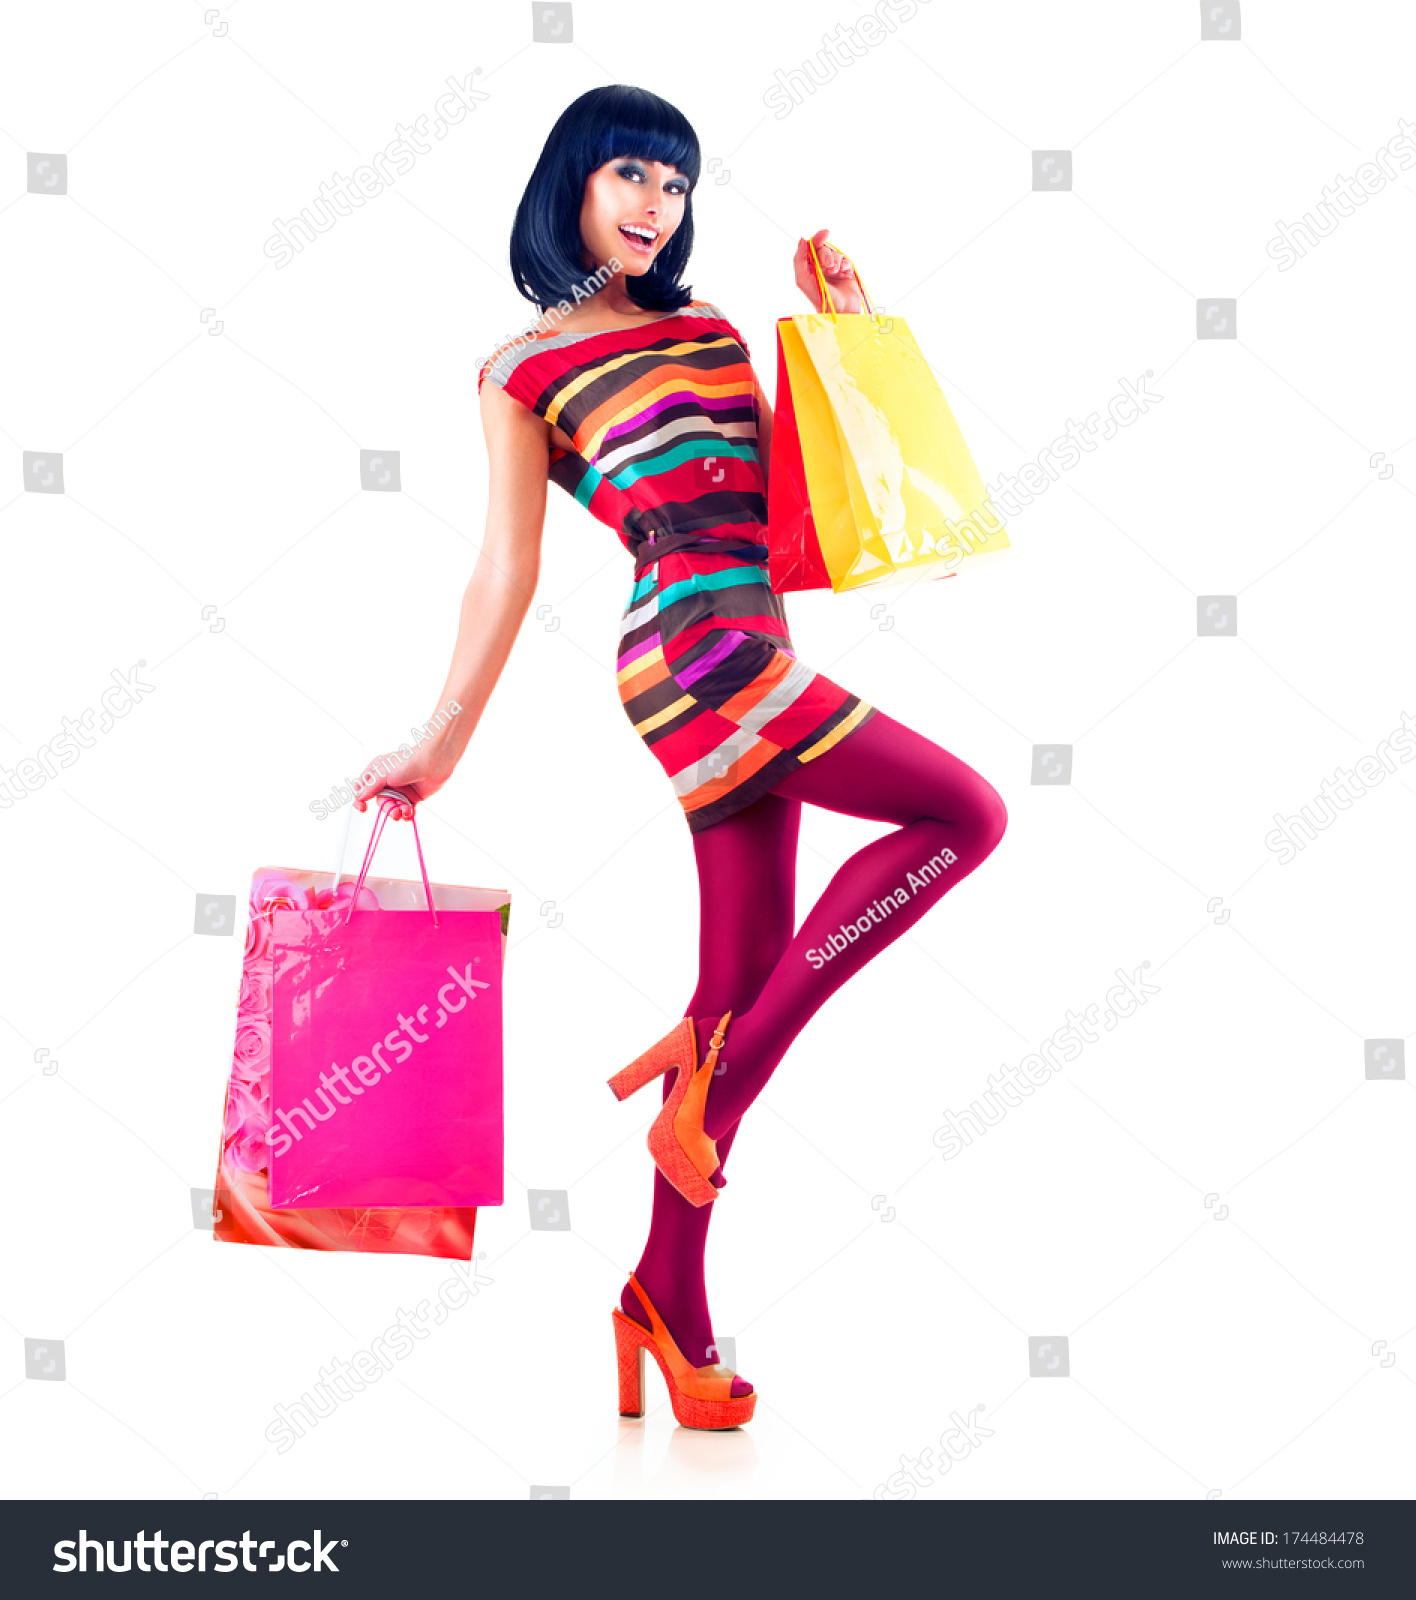 Woman posing with shopping bags isolated on white background full - Fashion Shopping Model Girl Full Length Portrait Beauty Woman With Shopping Bags Isolated On White